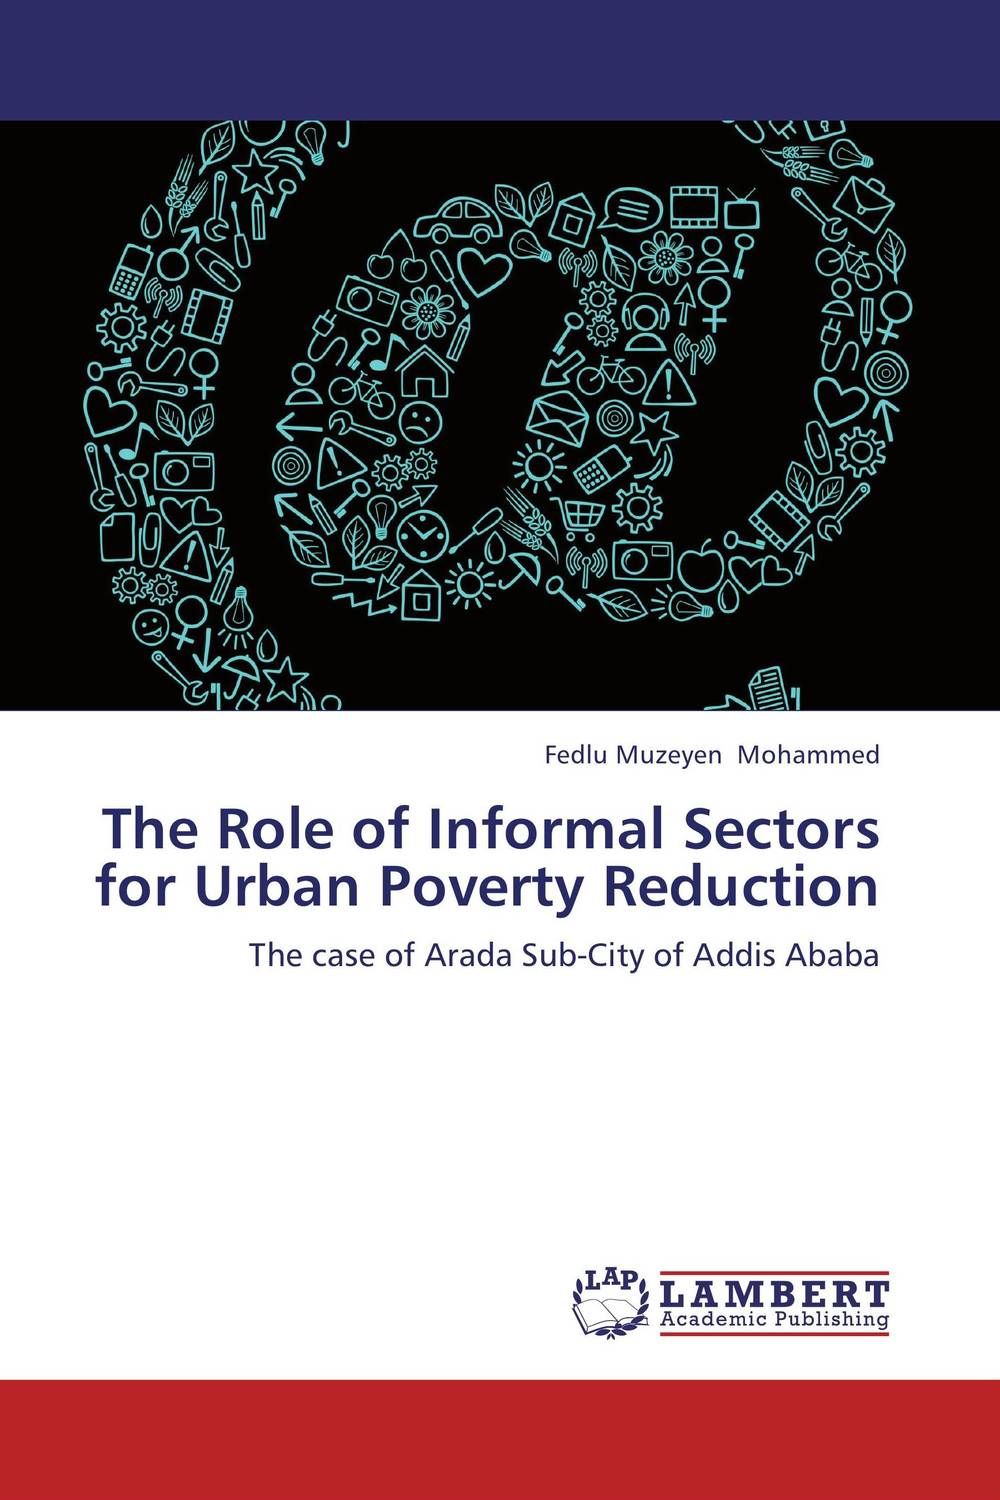 The Role of Informal Sectors for Urban Poverty Reduction role of ict in rural poverty alleviation